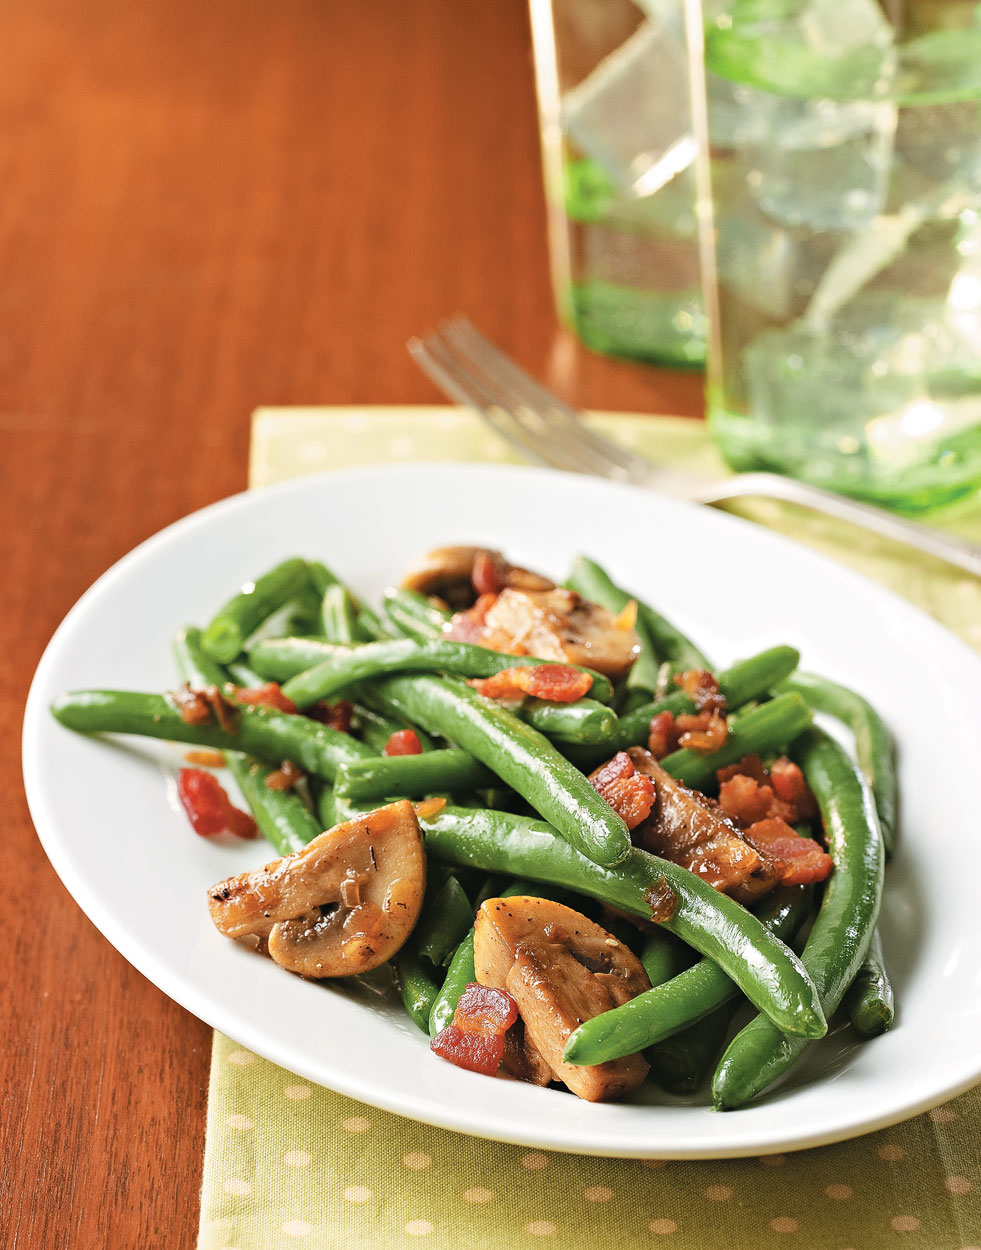 Green Beans with Bacon & Mushrooms